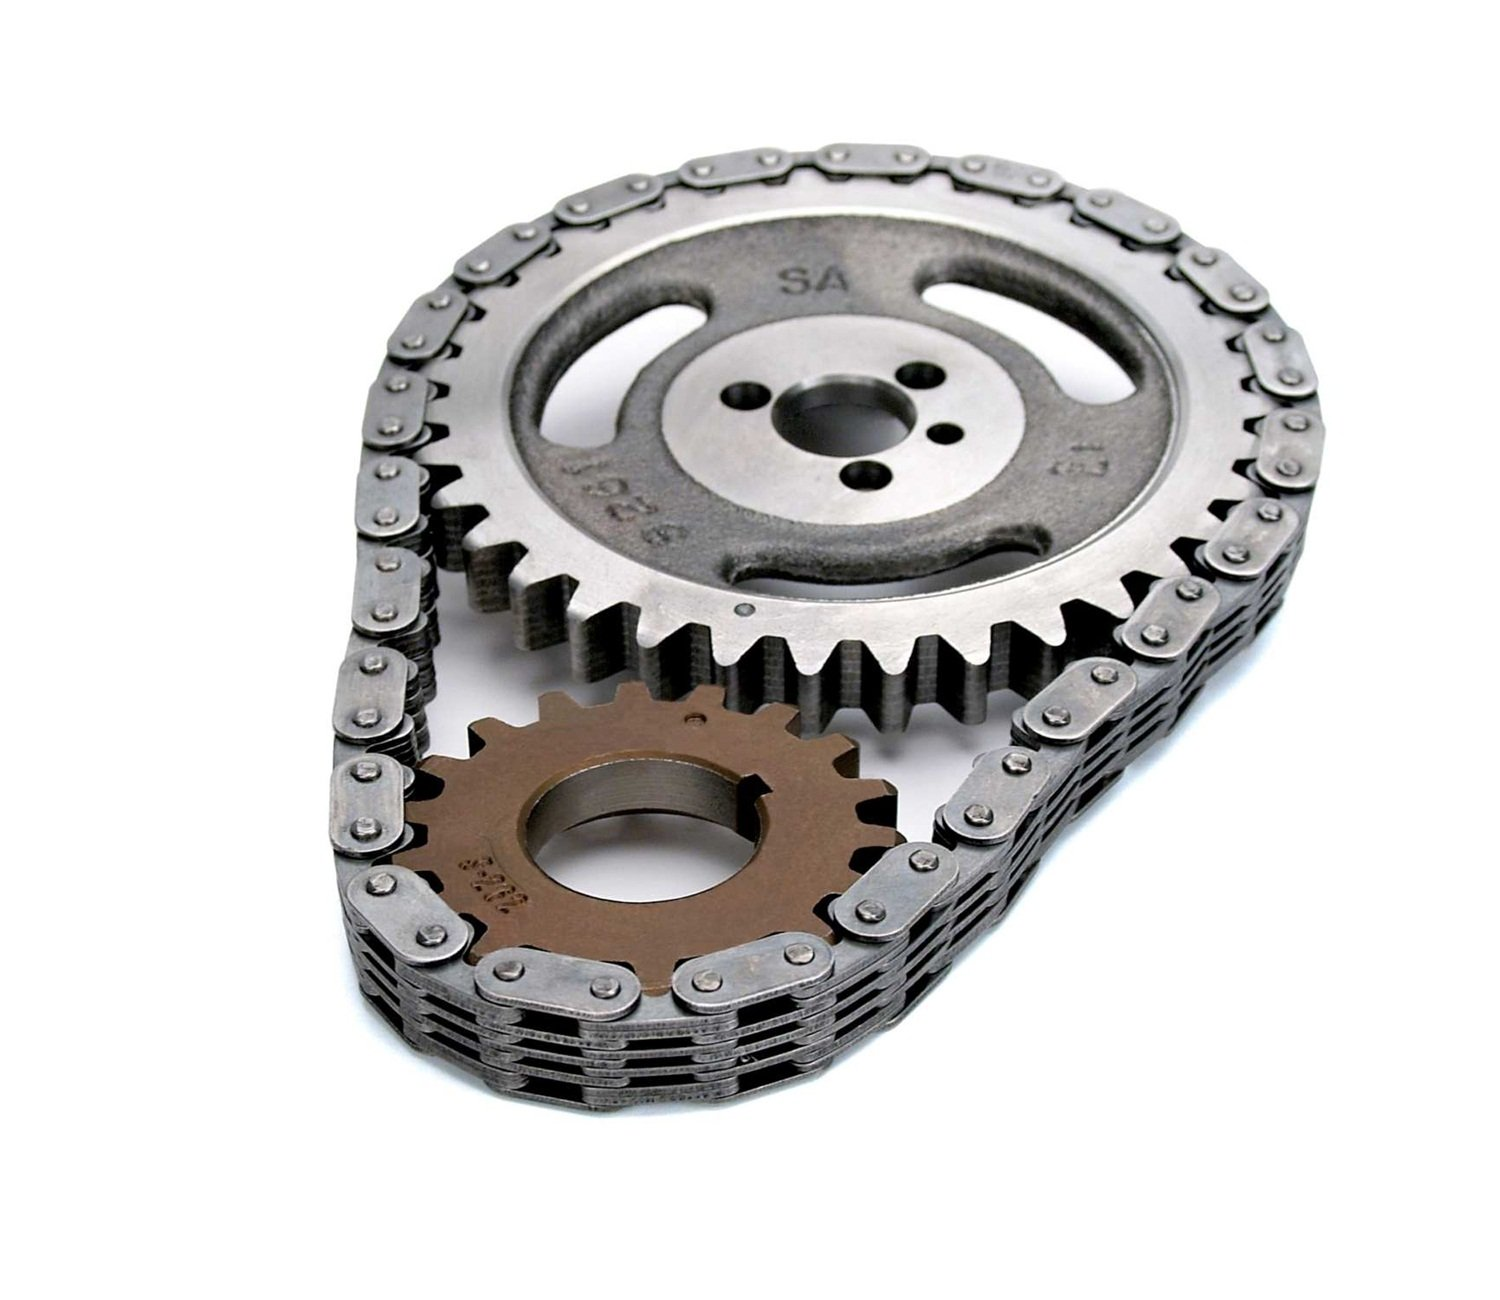 Competition Cams 3200 High Energy Timing Chain Set for Small Block Chevrolet COMP Cams